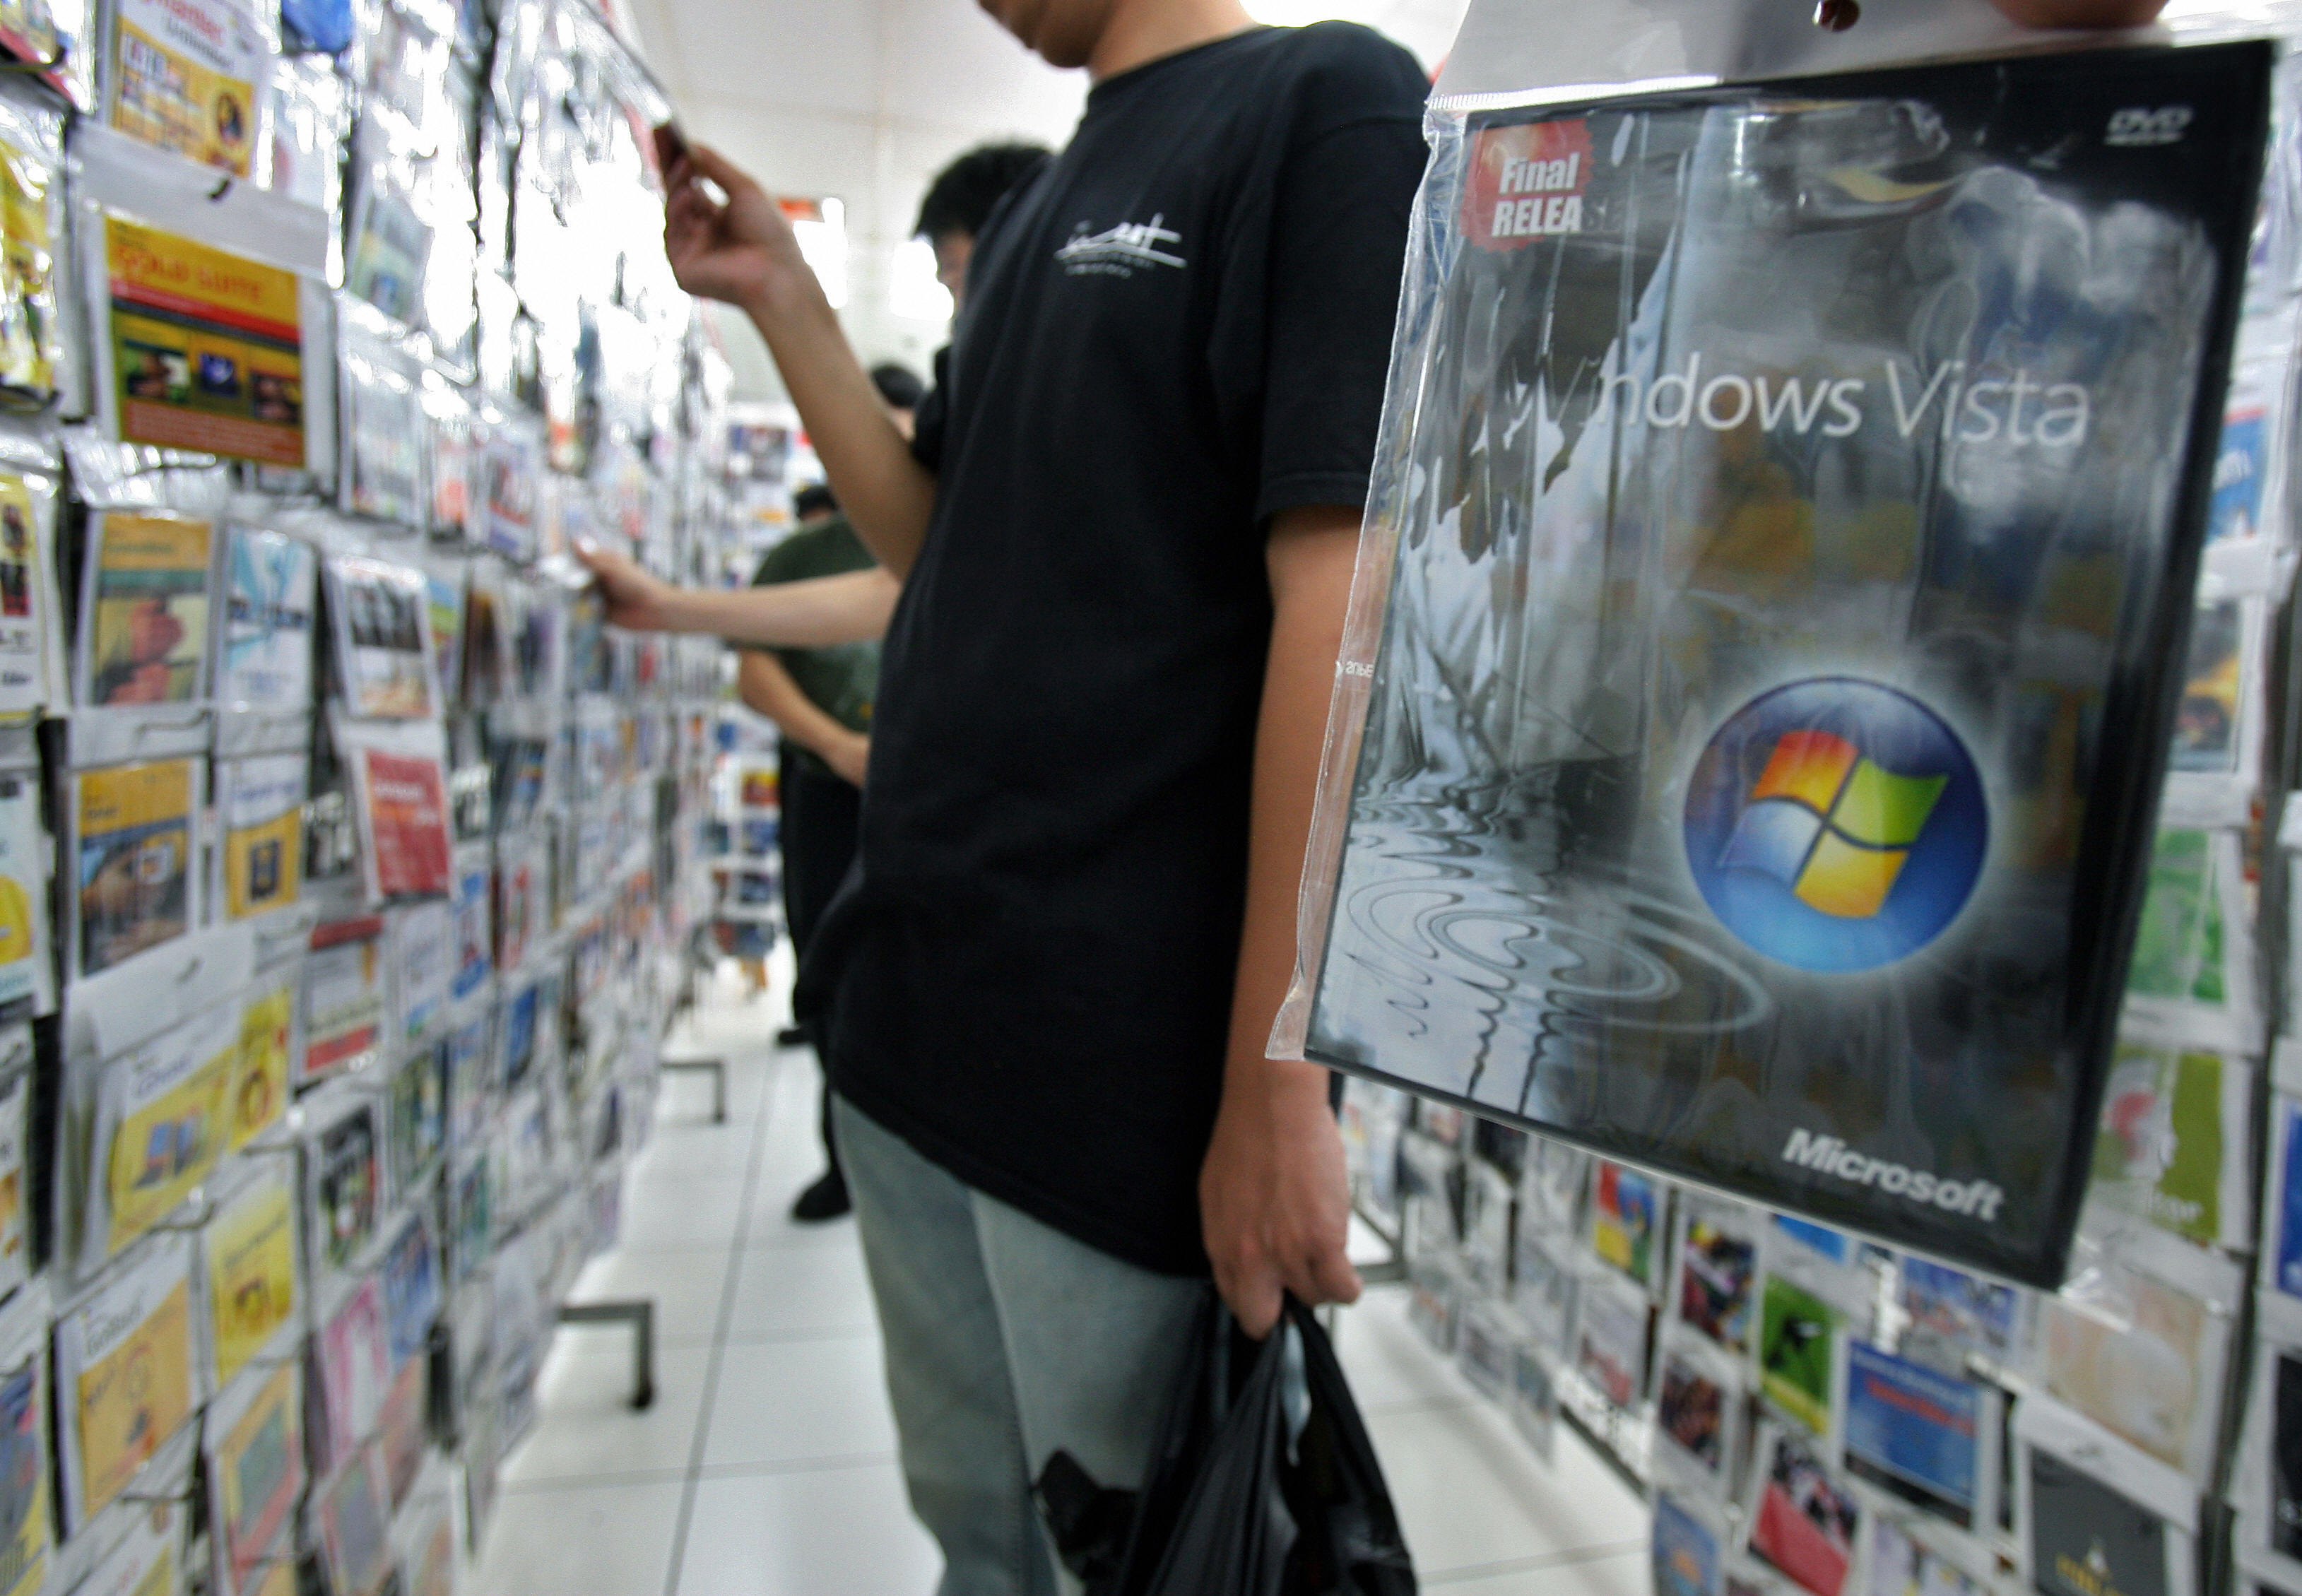 A man buys a pirated copy of Microsoft's operation system Windows Vista from a stall at a shopping mall in Jakarta, 30 January 2007.